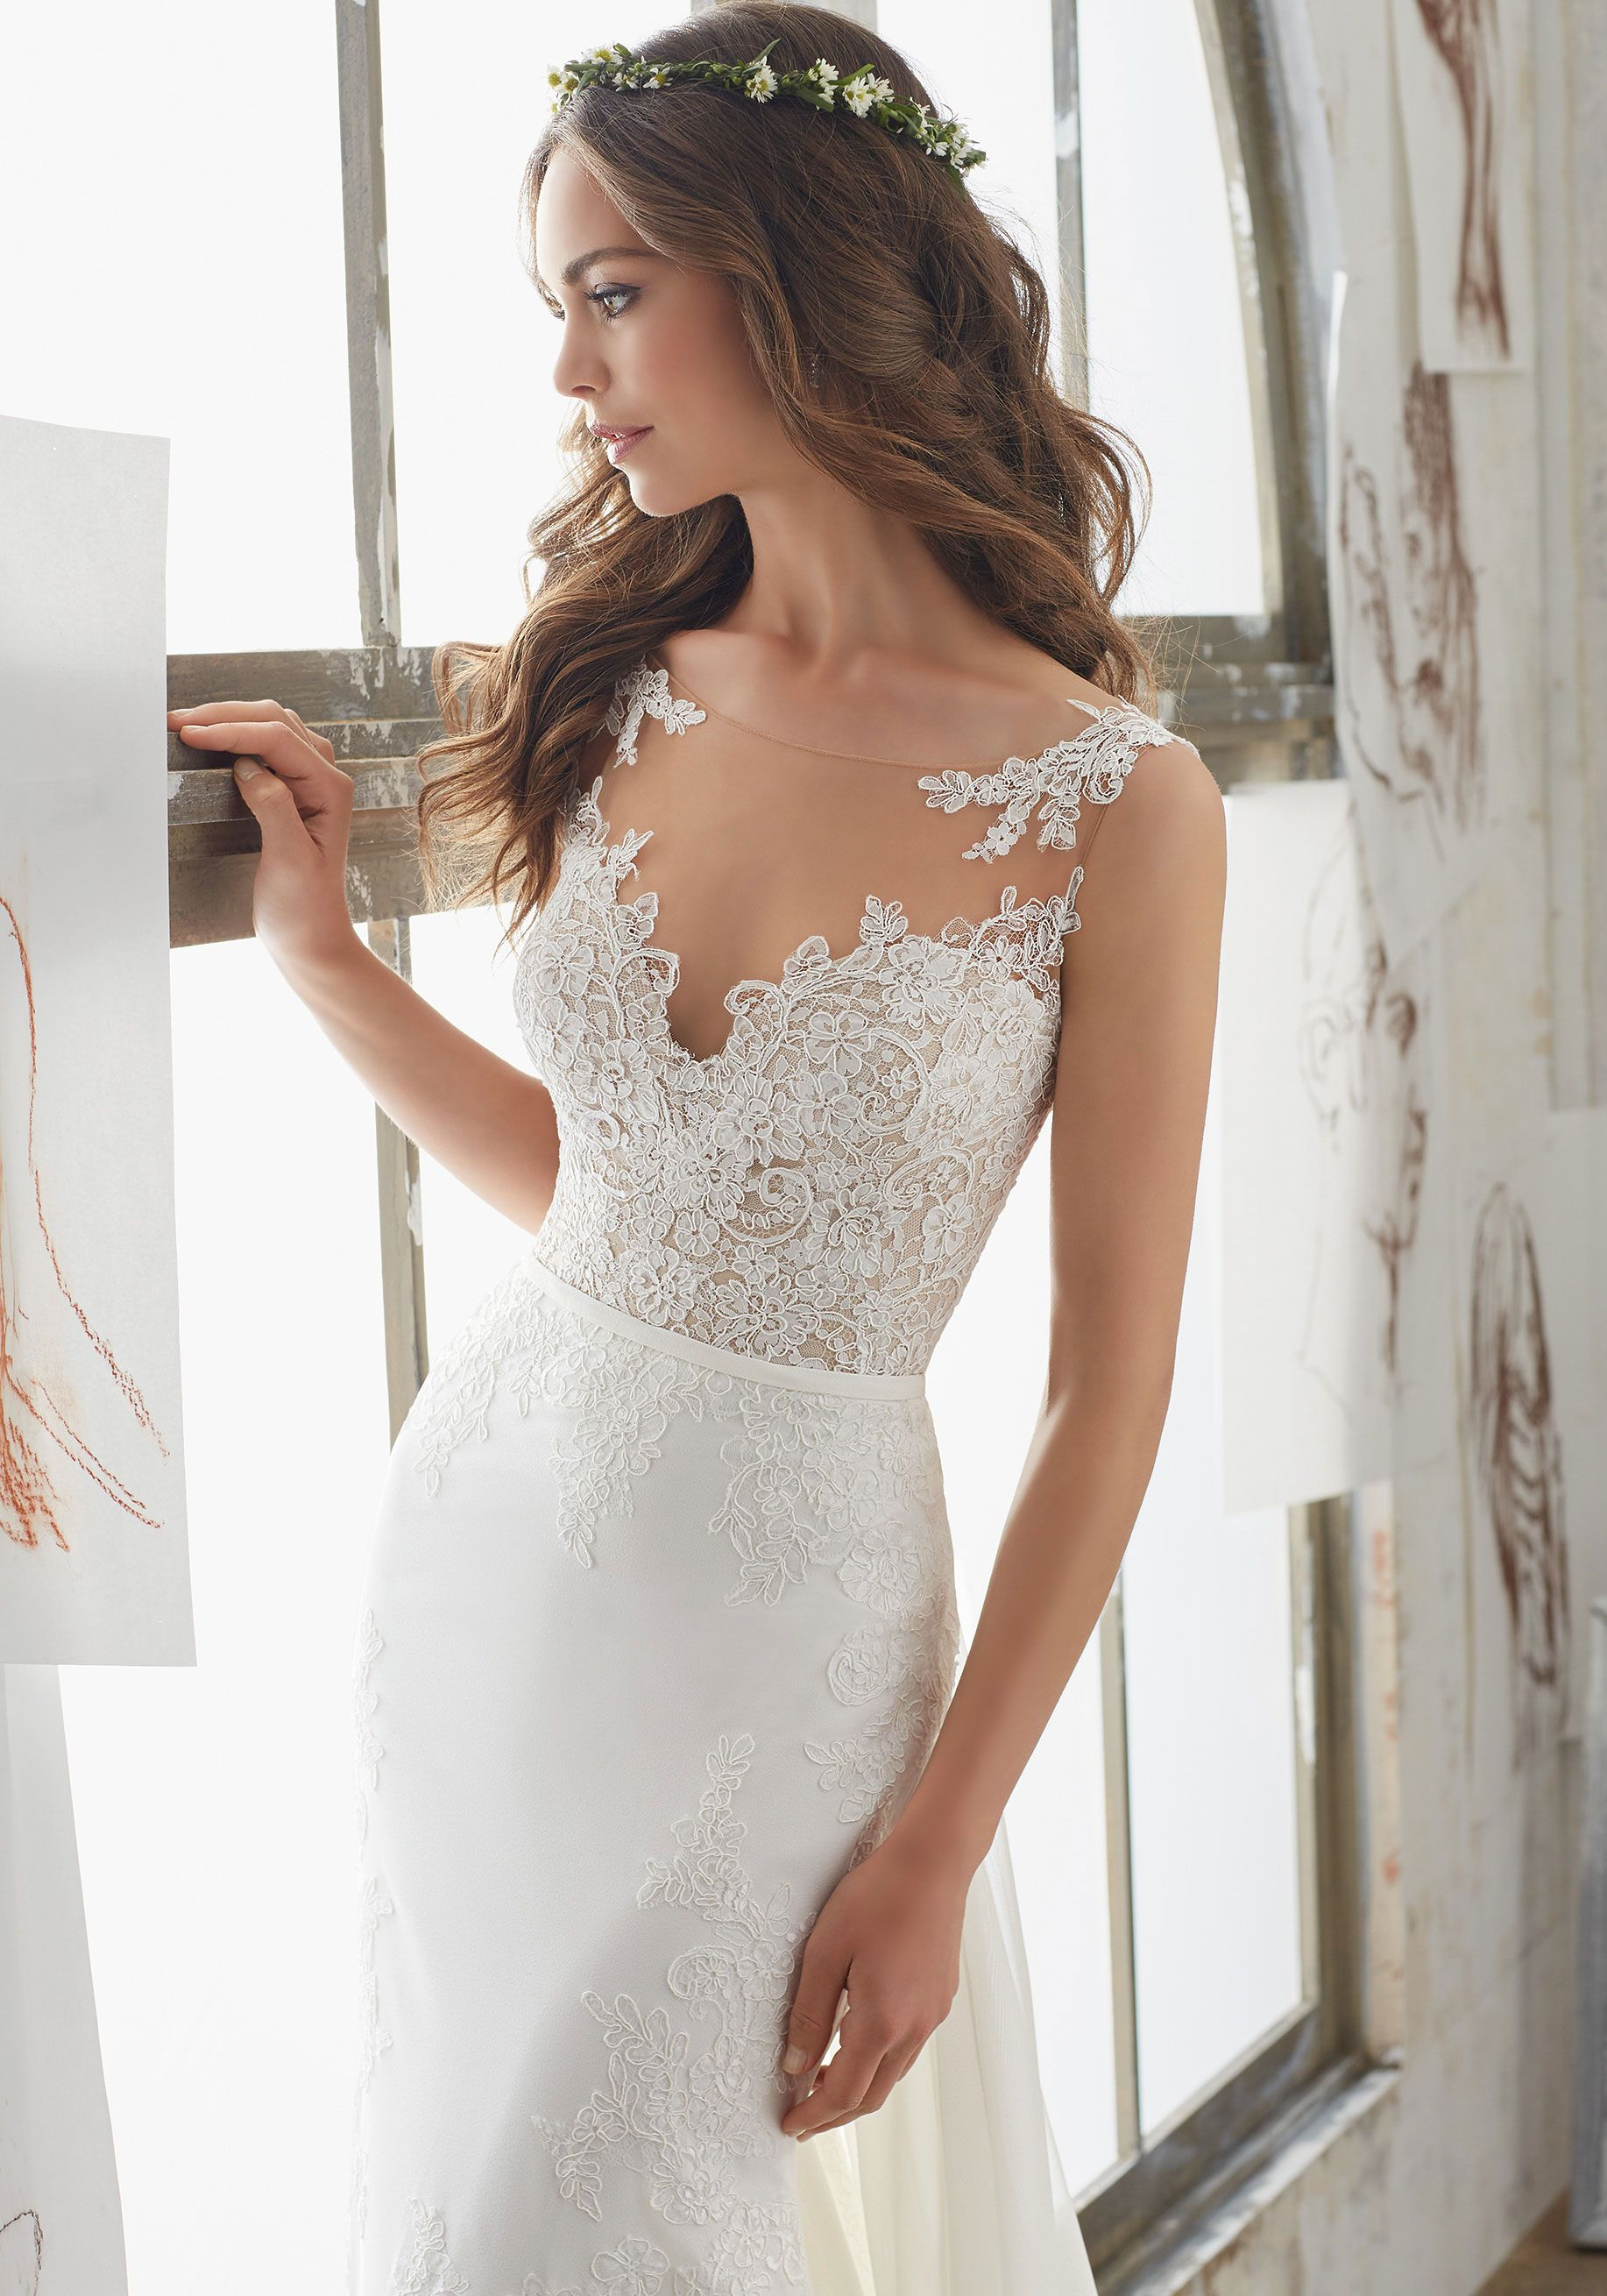 2017 Wedding Dresses And Bridal Gowns By Morilee By Madeline Gardner This Sheath Bridal Gown